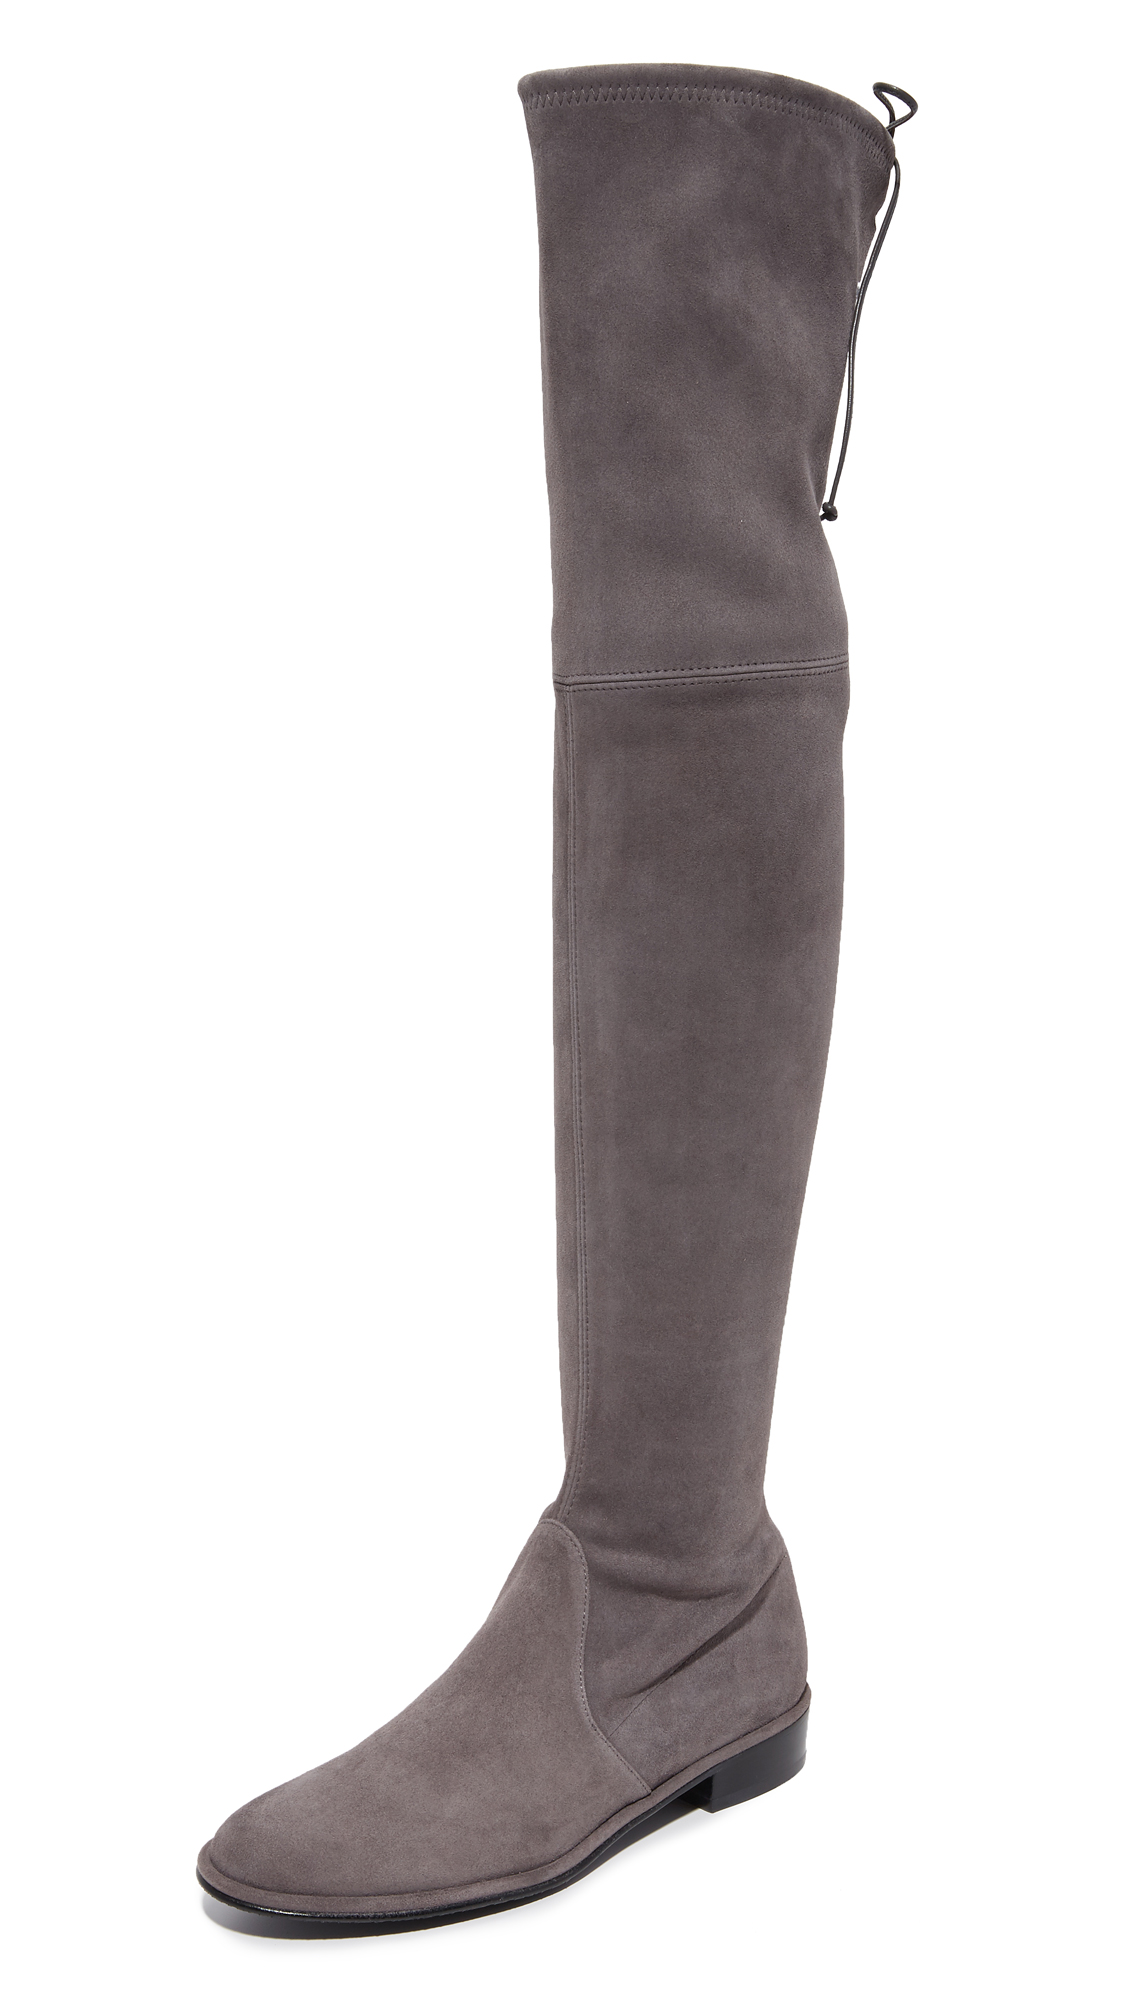 stuart weitzman female stuart weitzman lowland over the knee boots londra